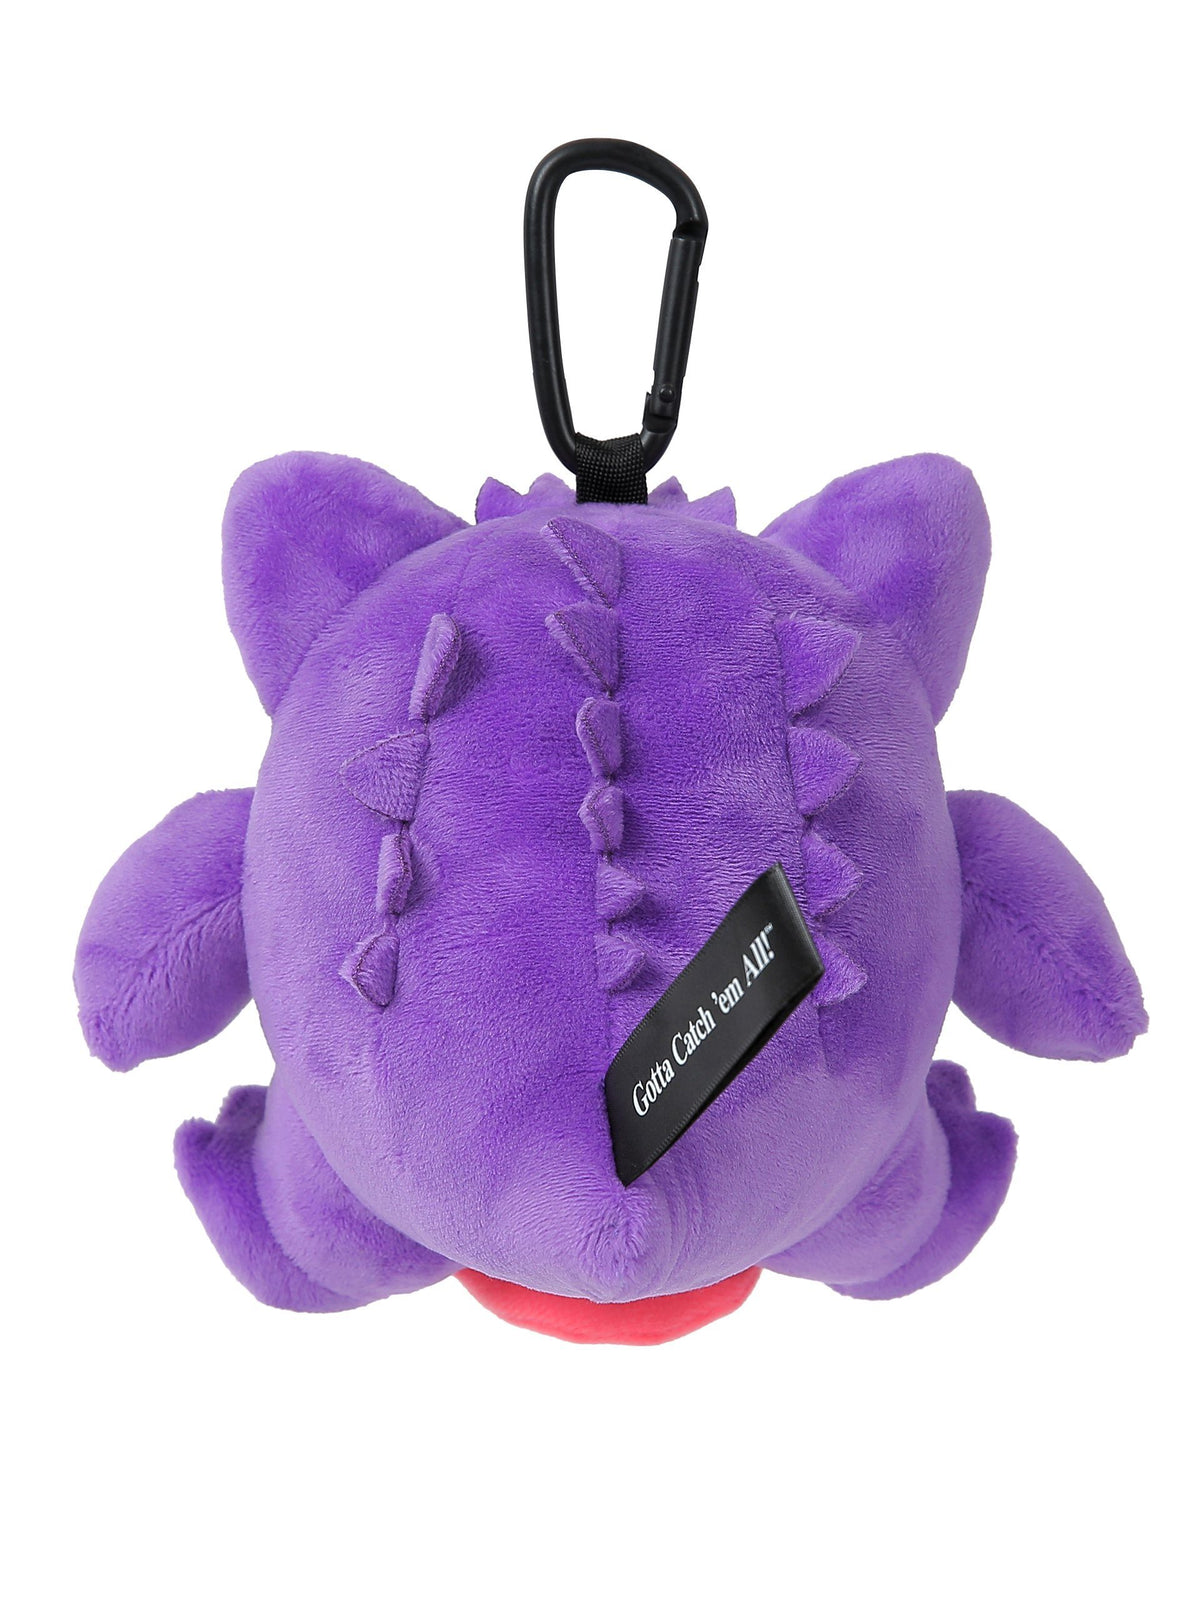 Pokemon Penteom Plush - thisisneverthat